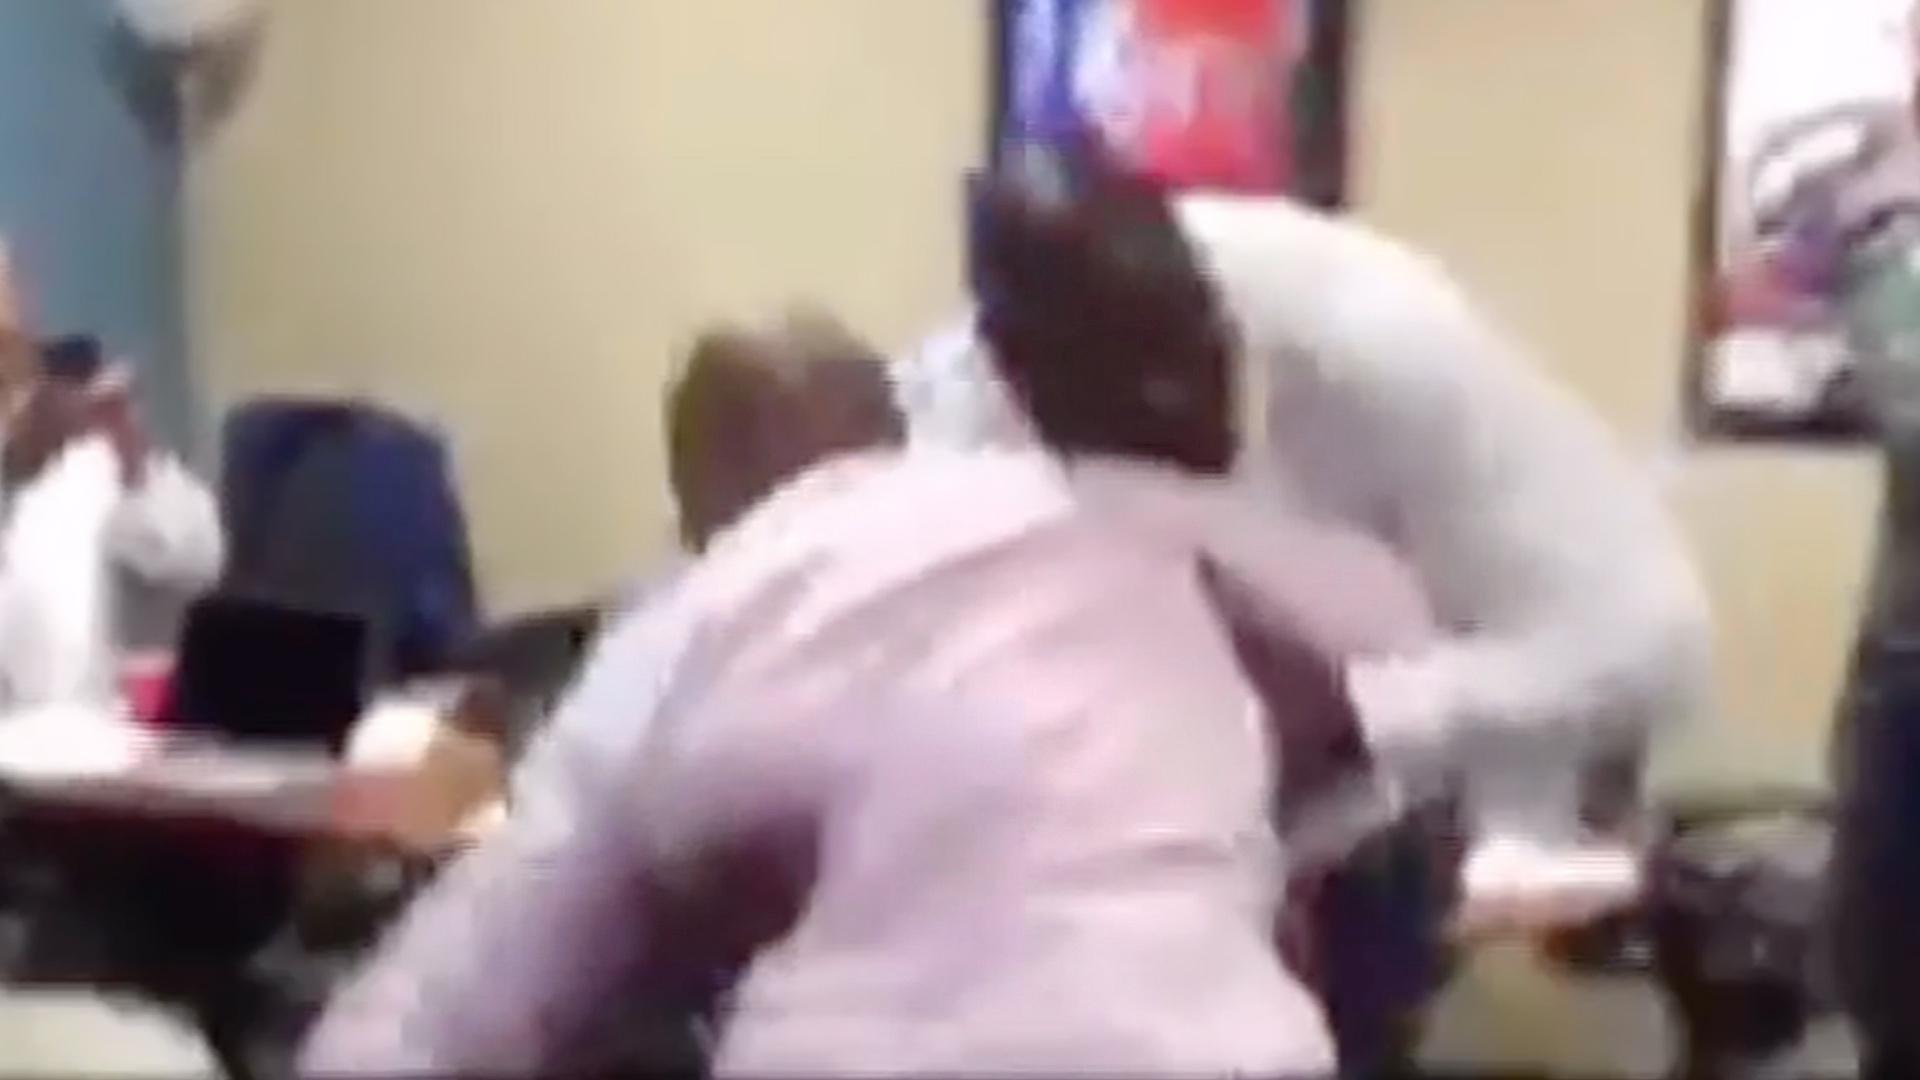 Shaquille O'Neal & Charles Barkley Fight Each Other, Have Dance Battle on Inside the NBA